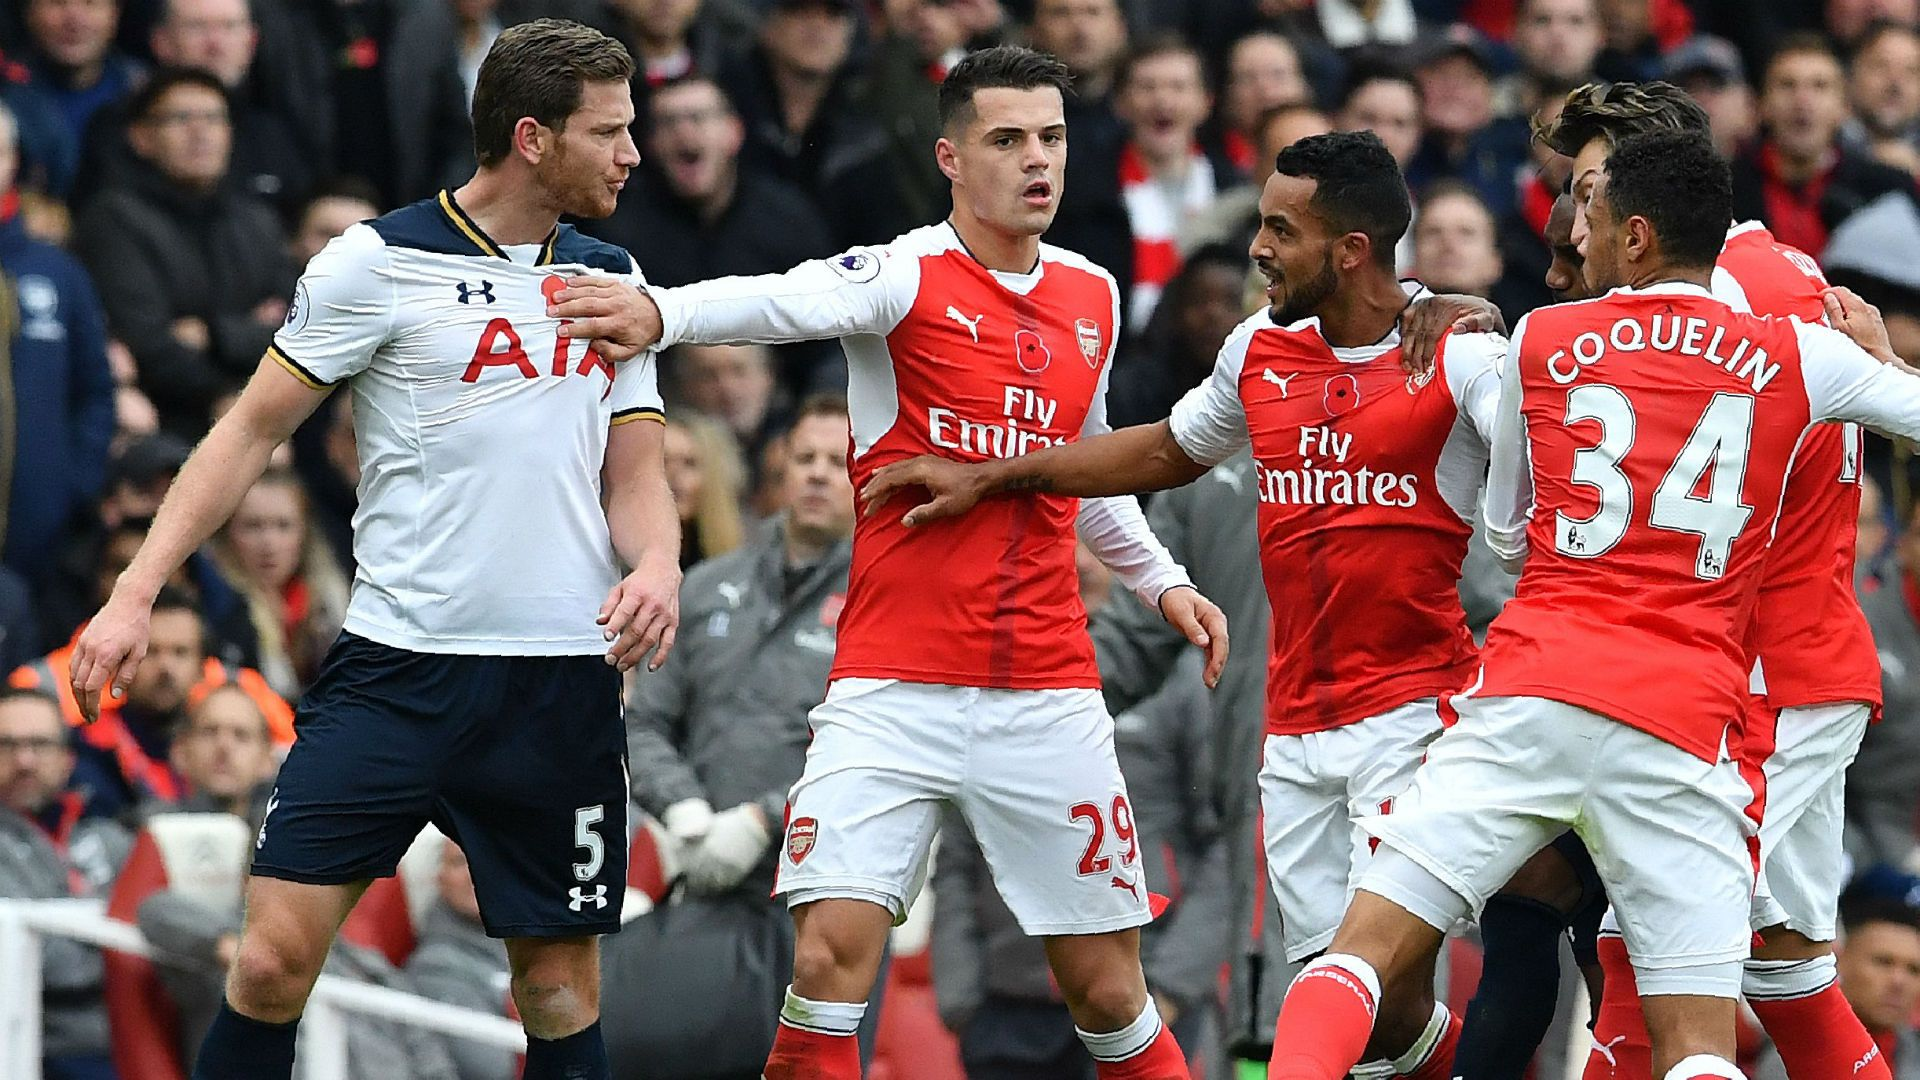 Watch online Arsenal vs Tottenham Hotspur live streaming